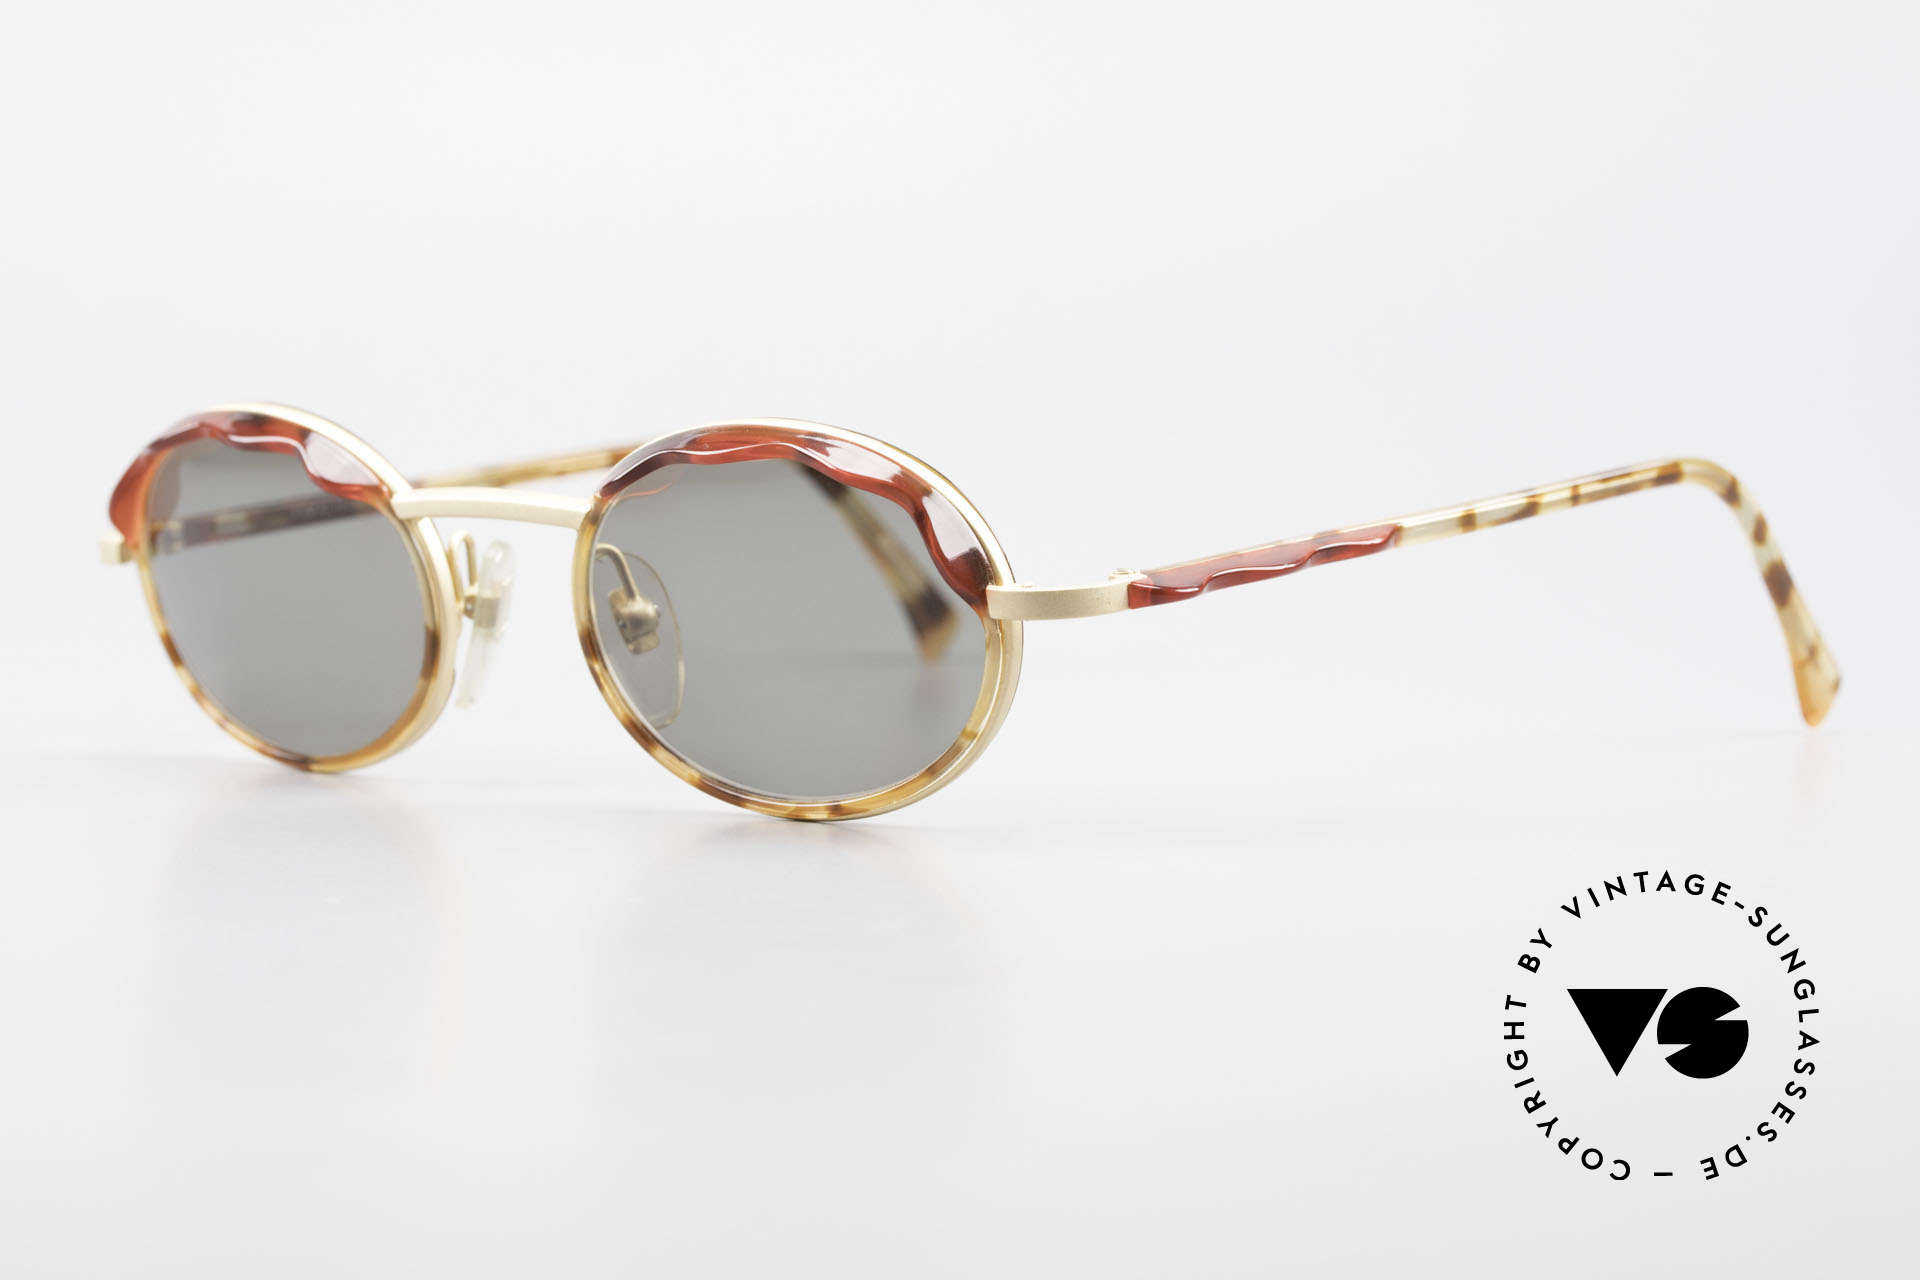 Alain Mikli 2149 / 04001 Oval Vintage Ladies Shades, with small red sun shields (blinds) above the lenses, Made for Women